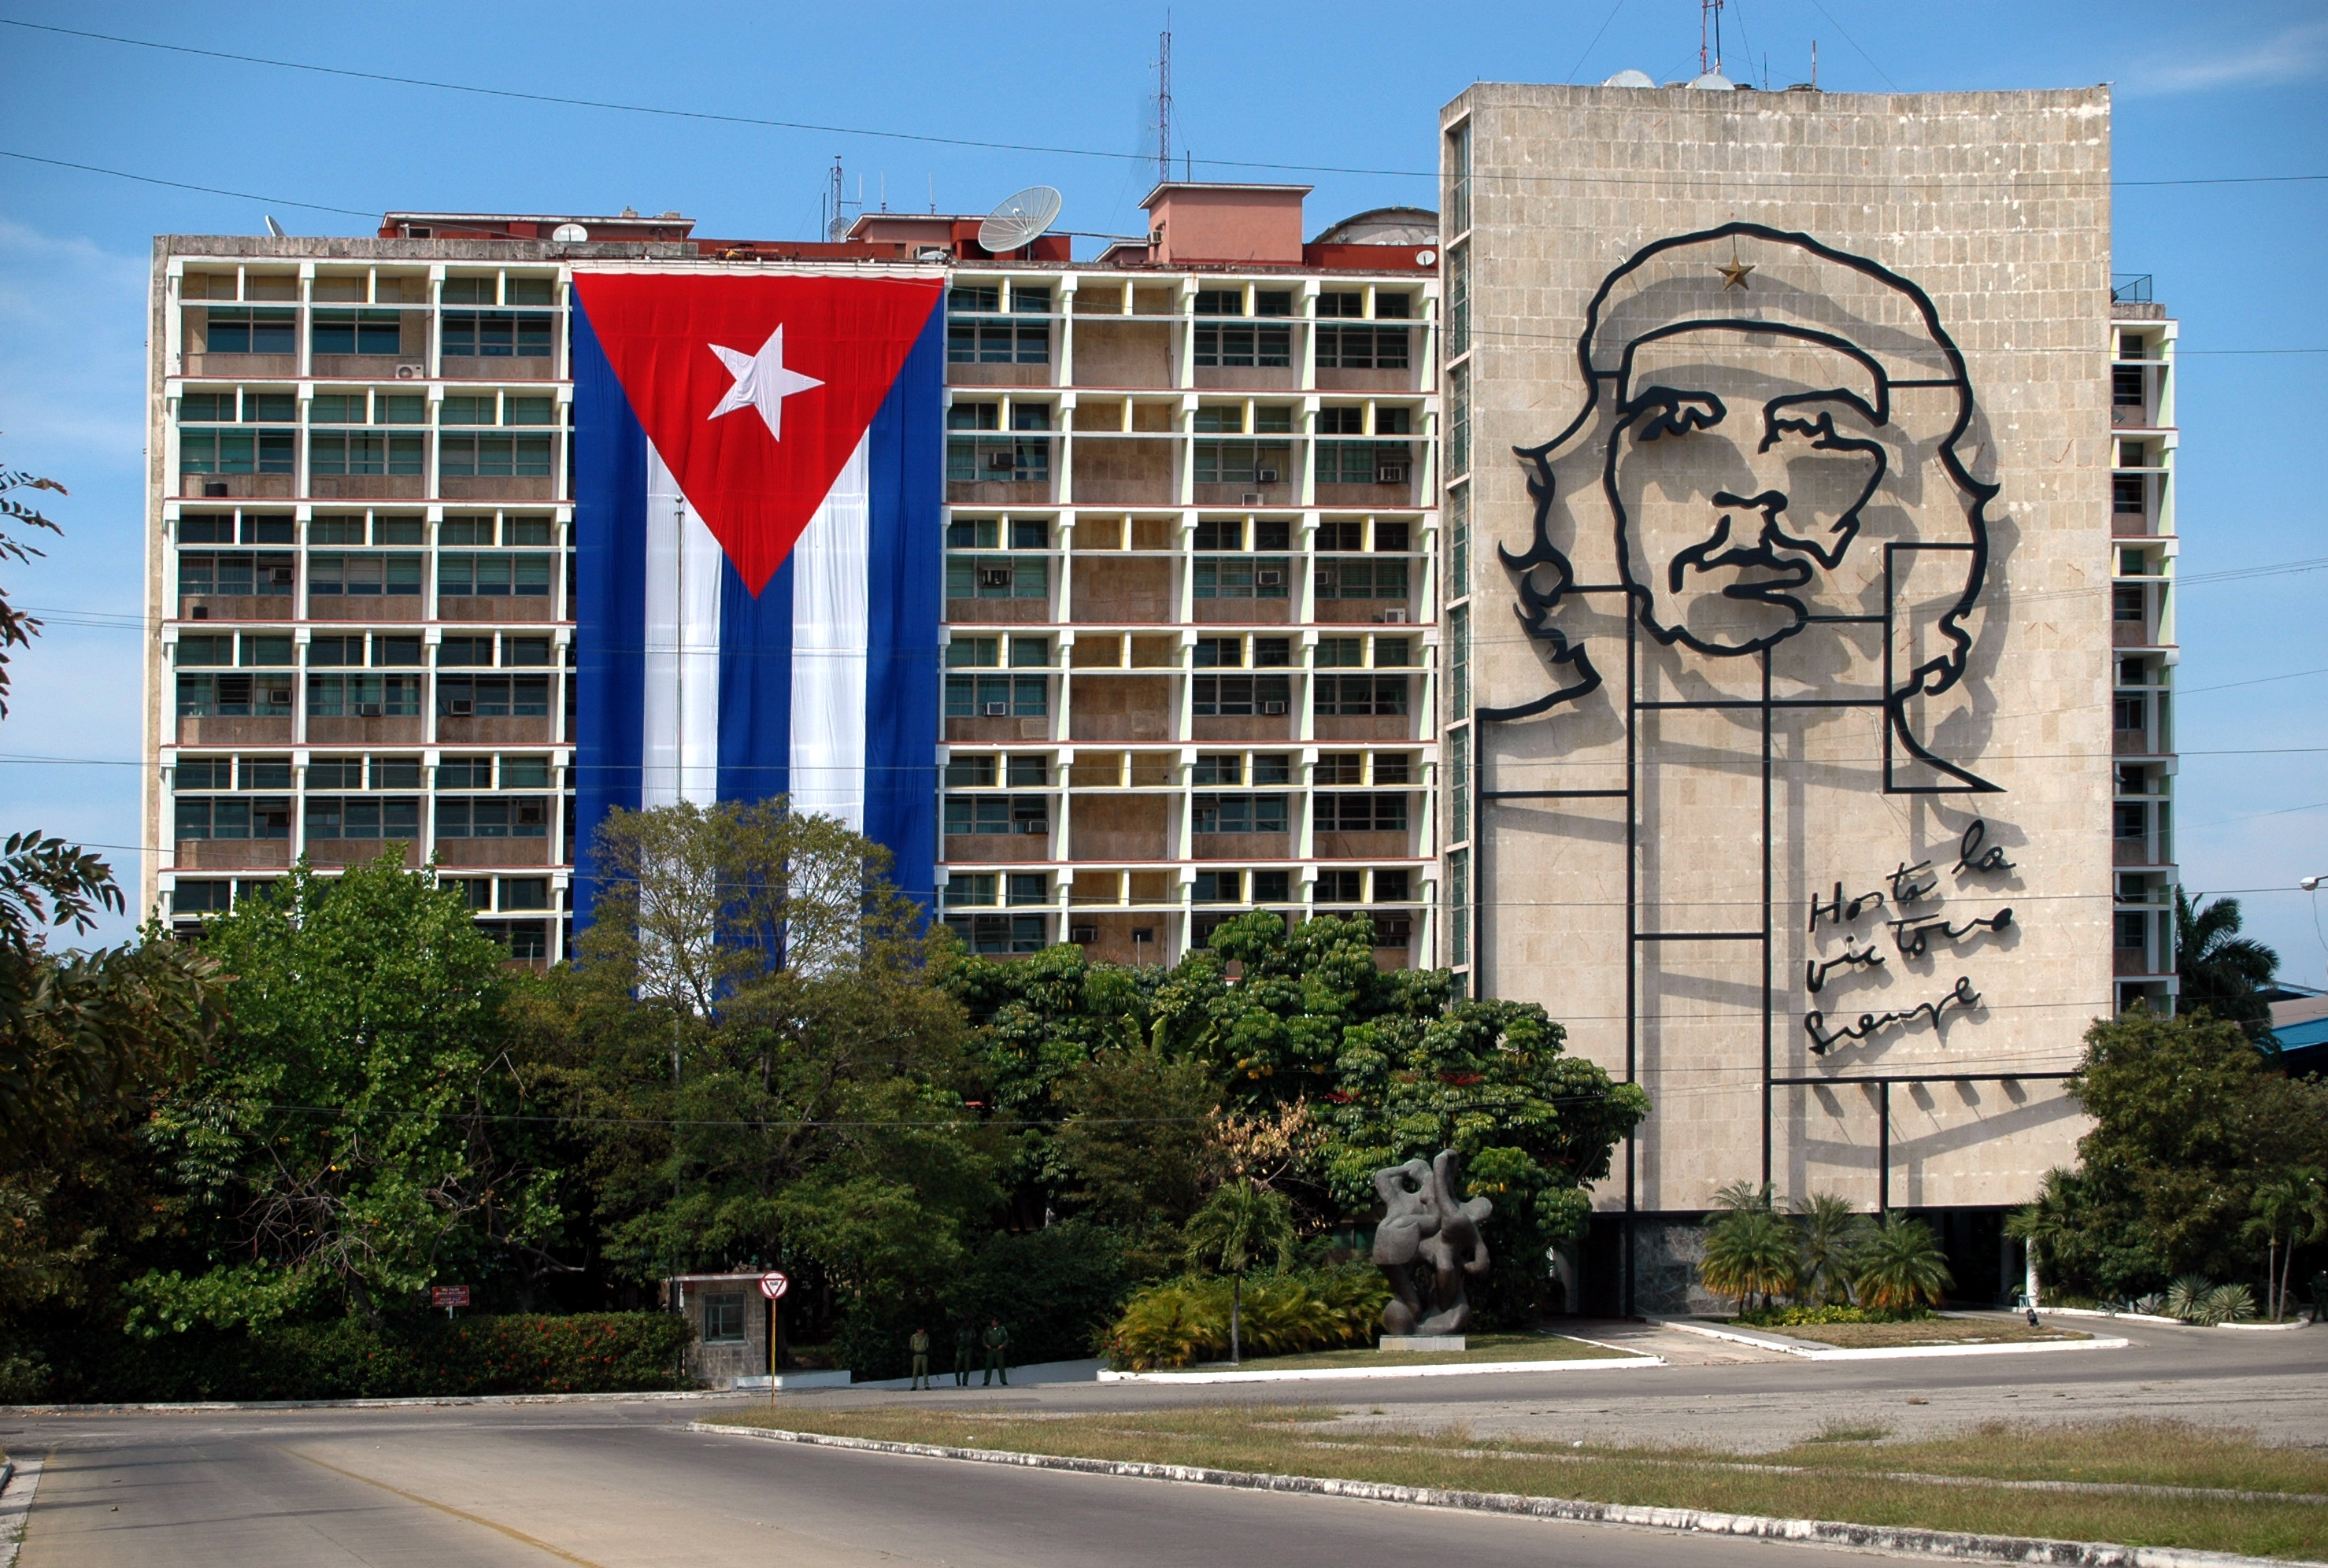 giant portrait of Che Guevara, Things to see in Cuba